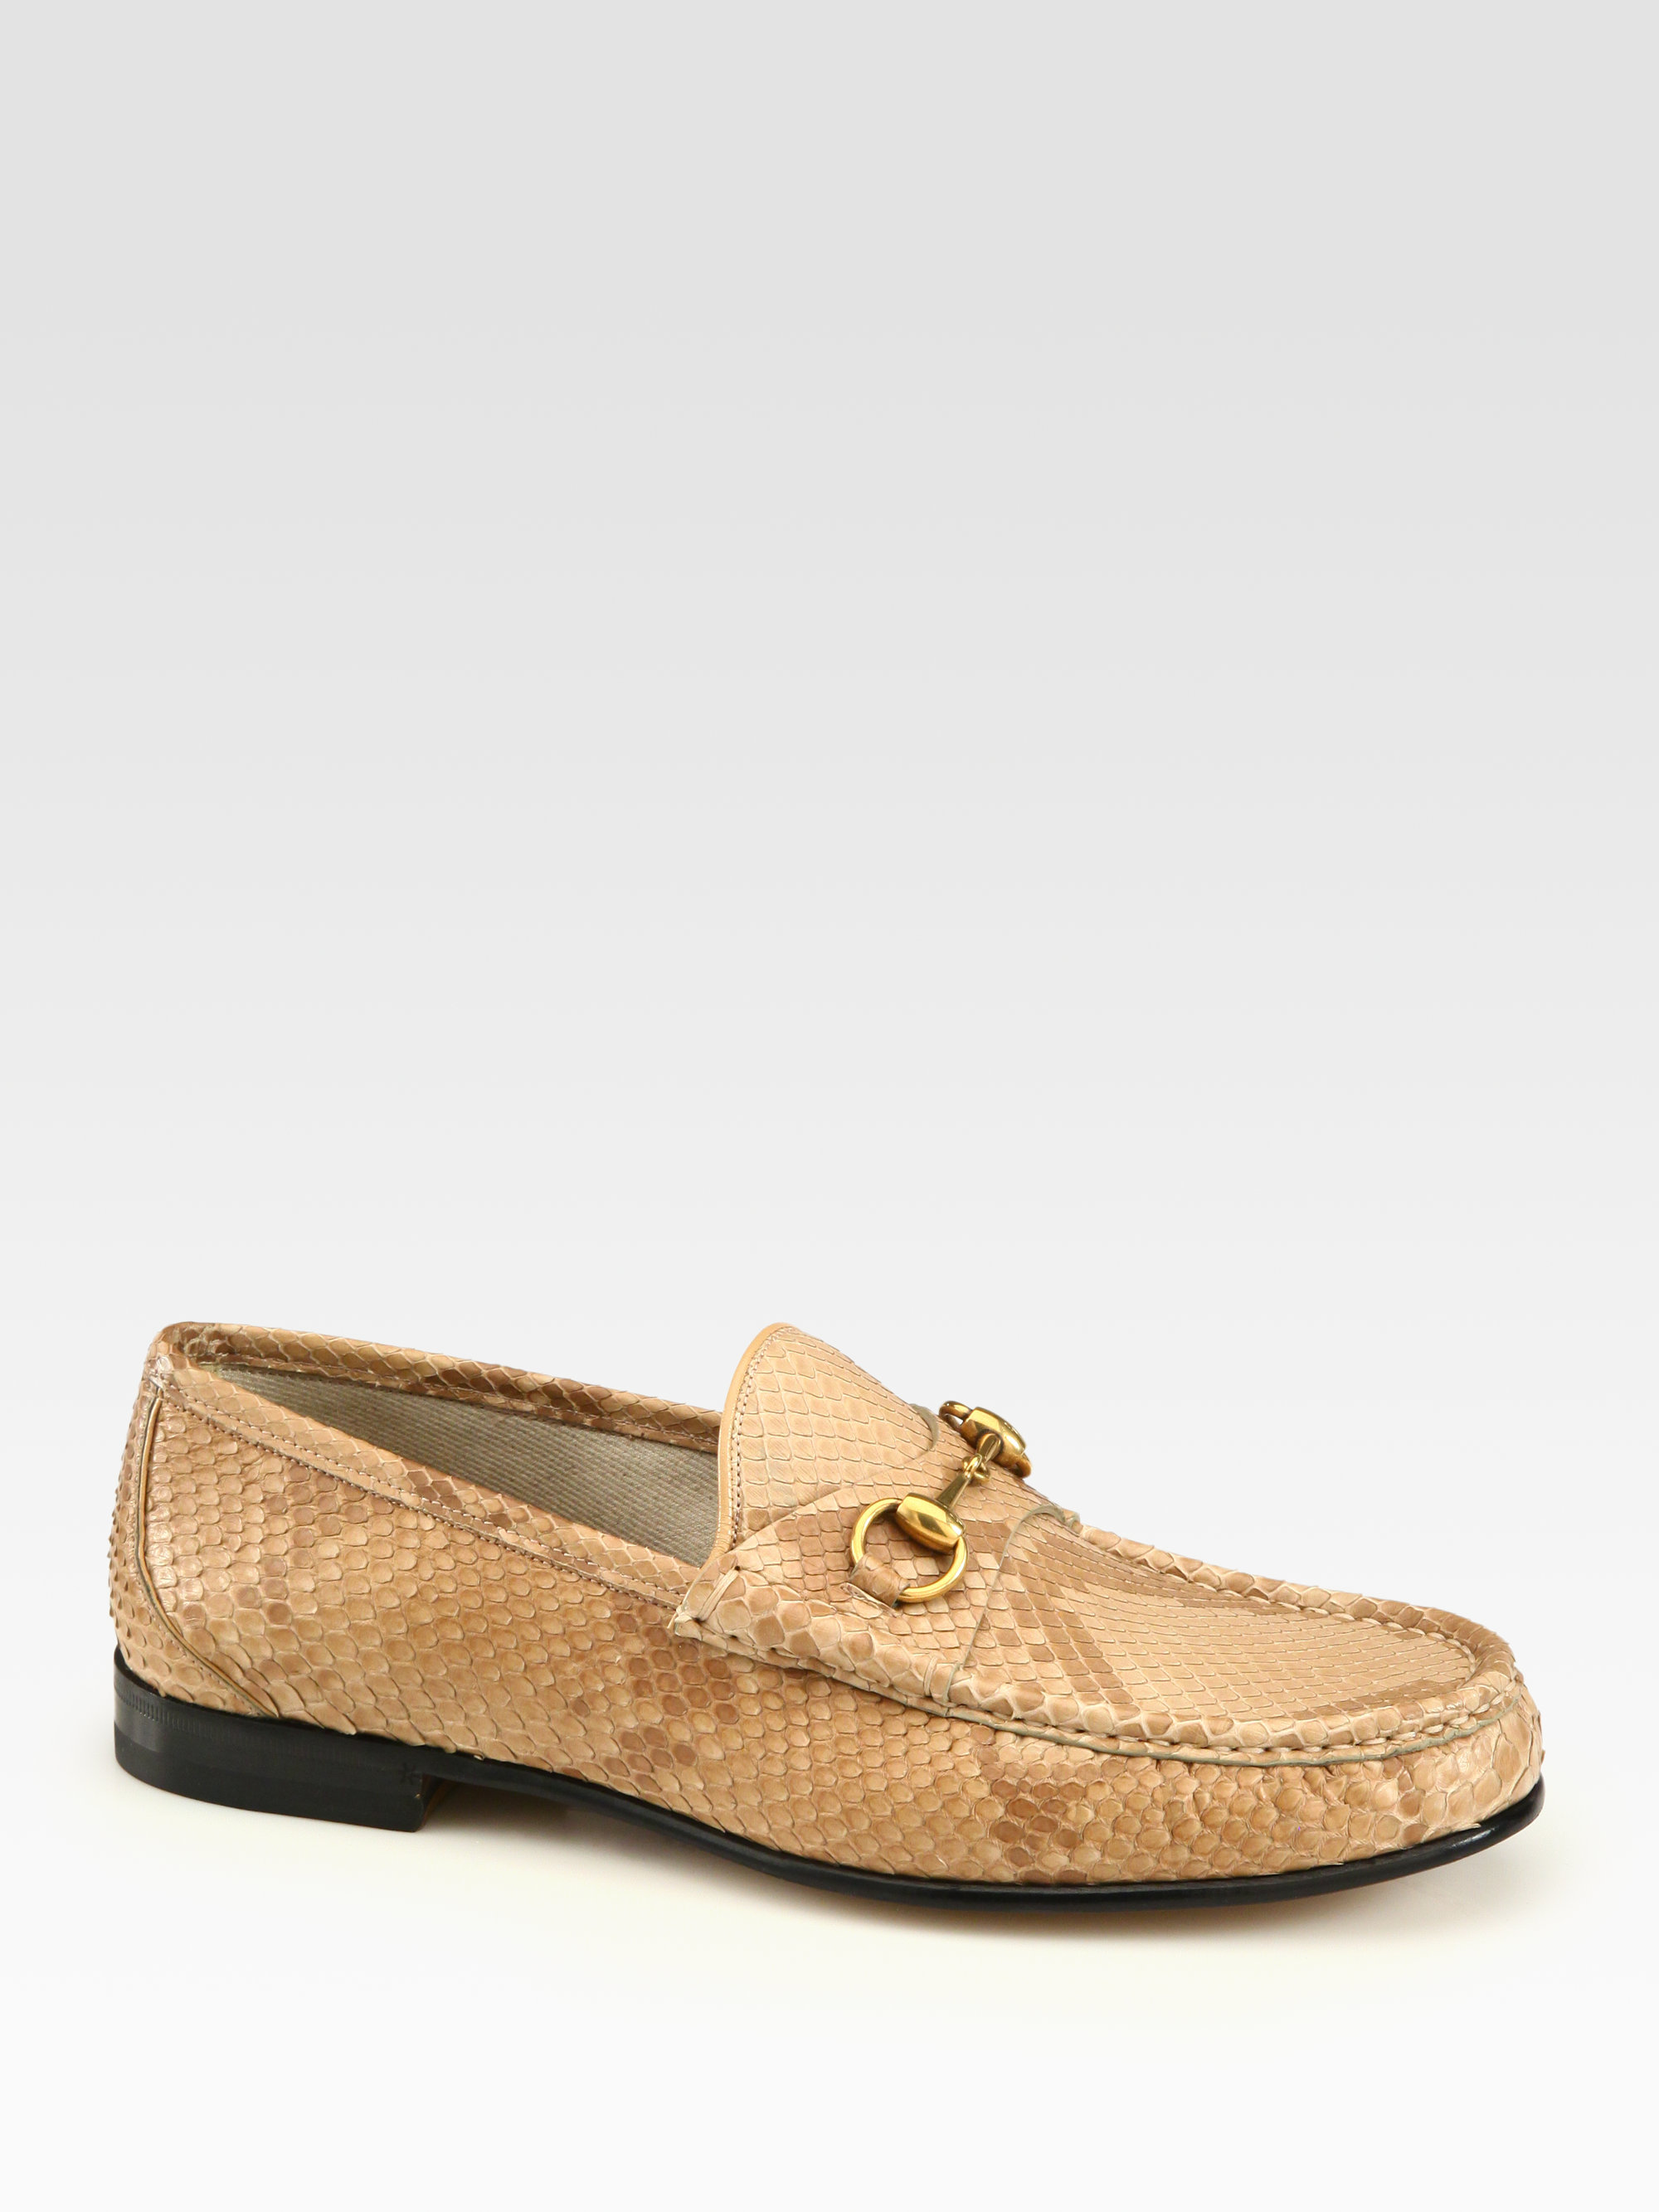 Lyst - Gucci Horsebit Grained-leather Driving Shoes in